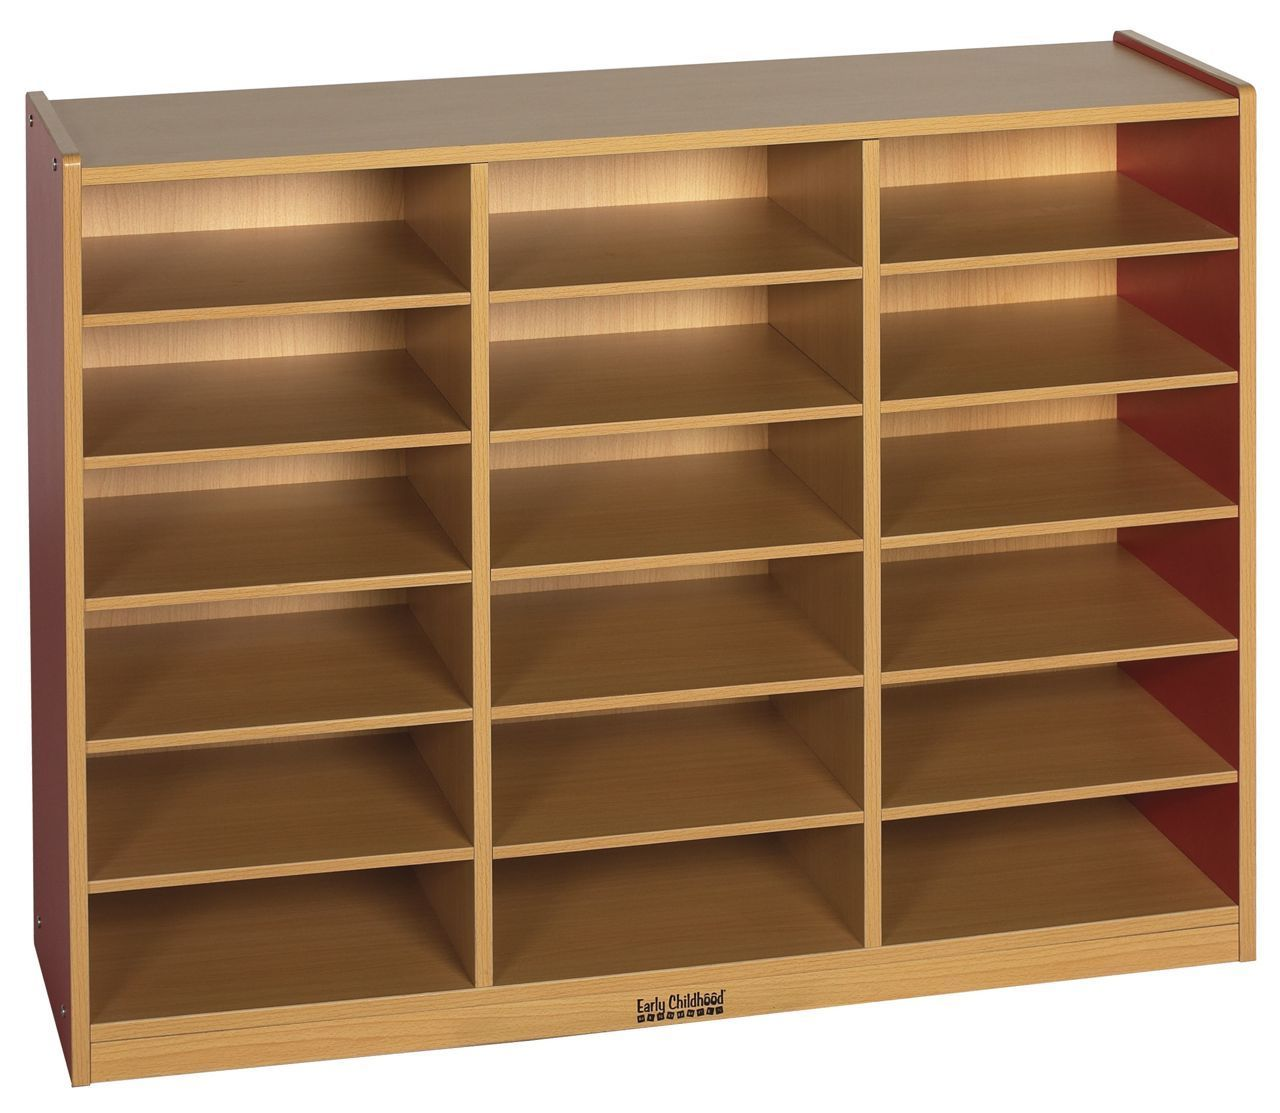 #38 - 18 Compartment Multi-Purpose Cabinet in Red